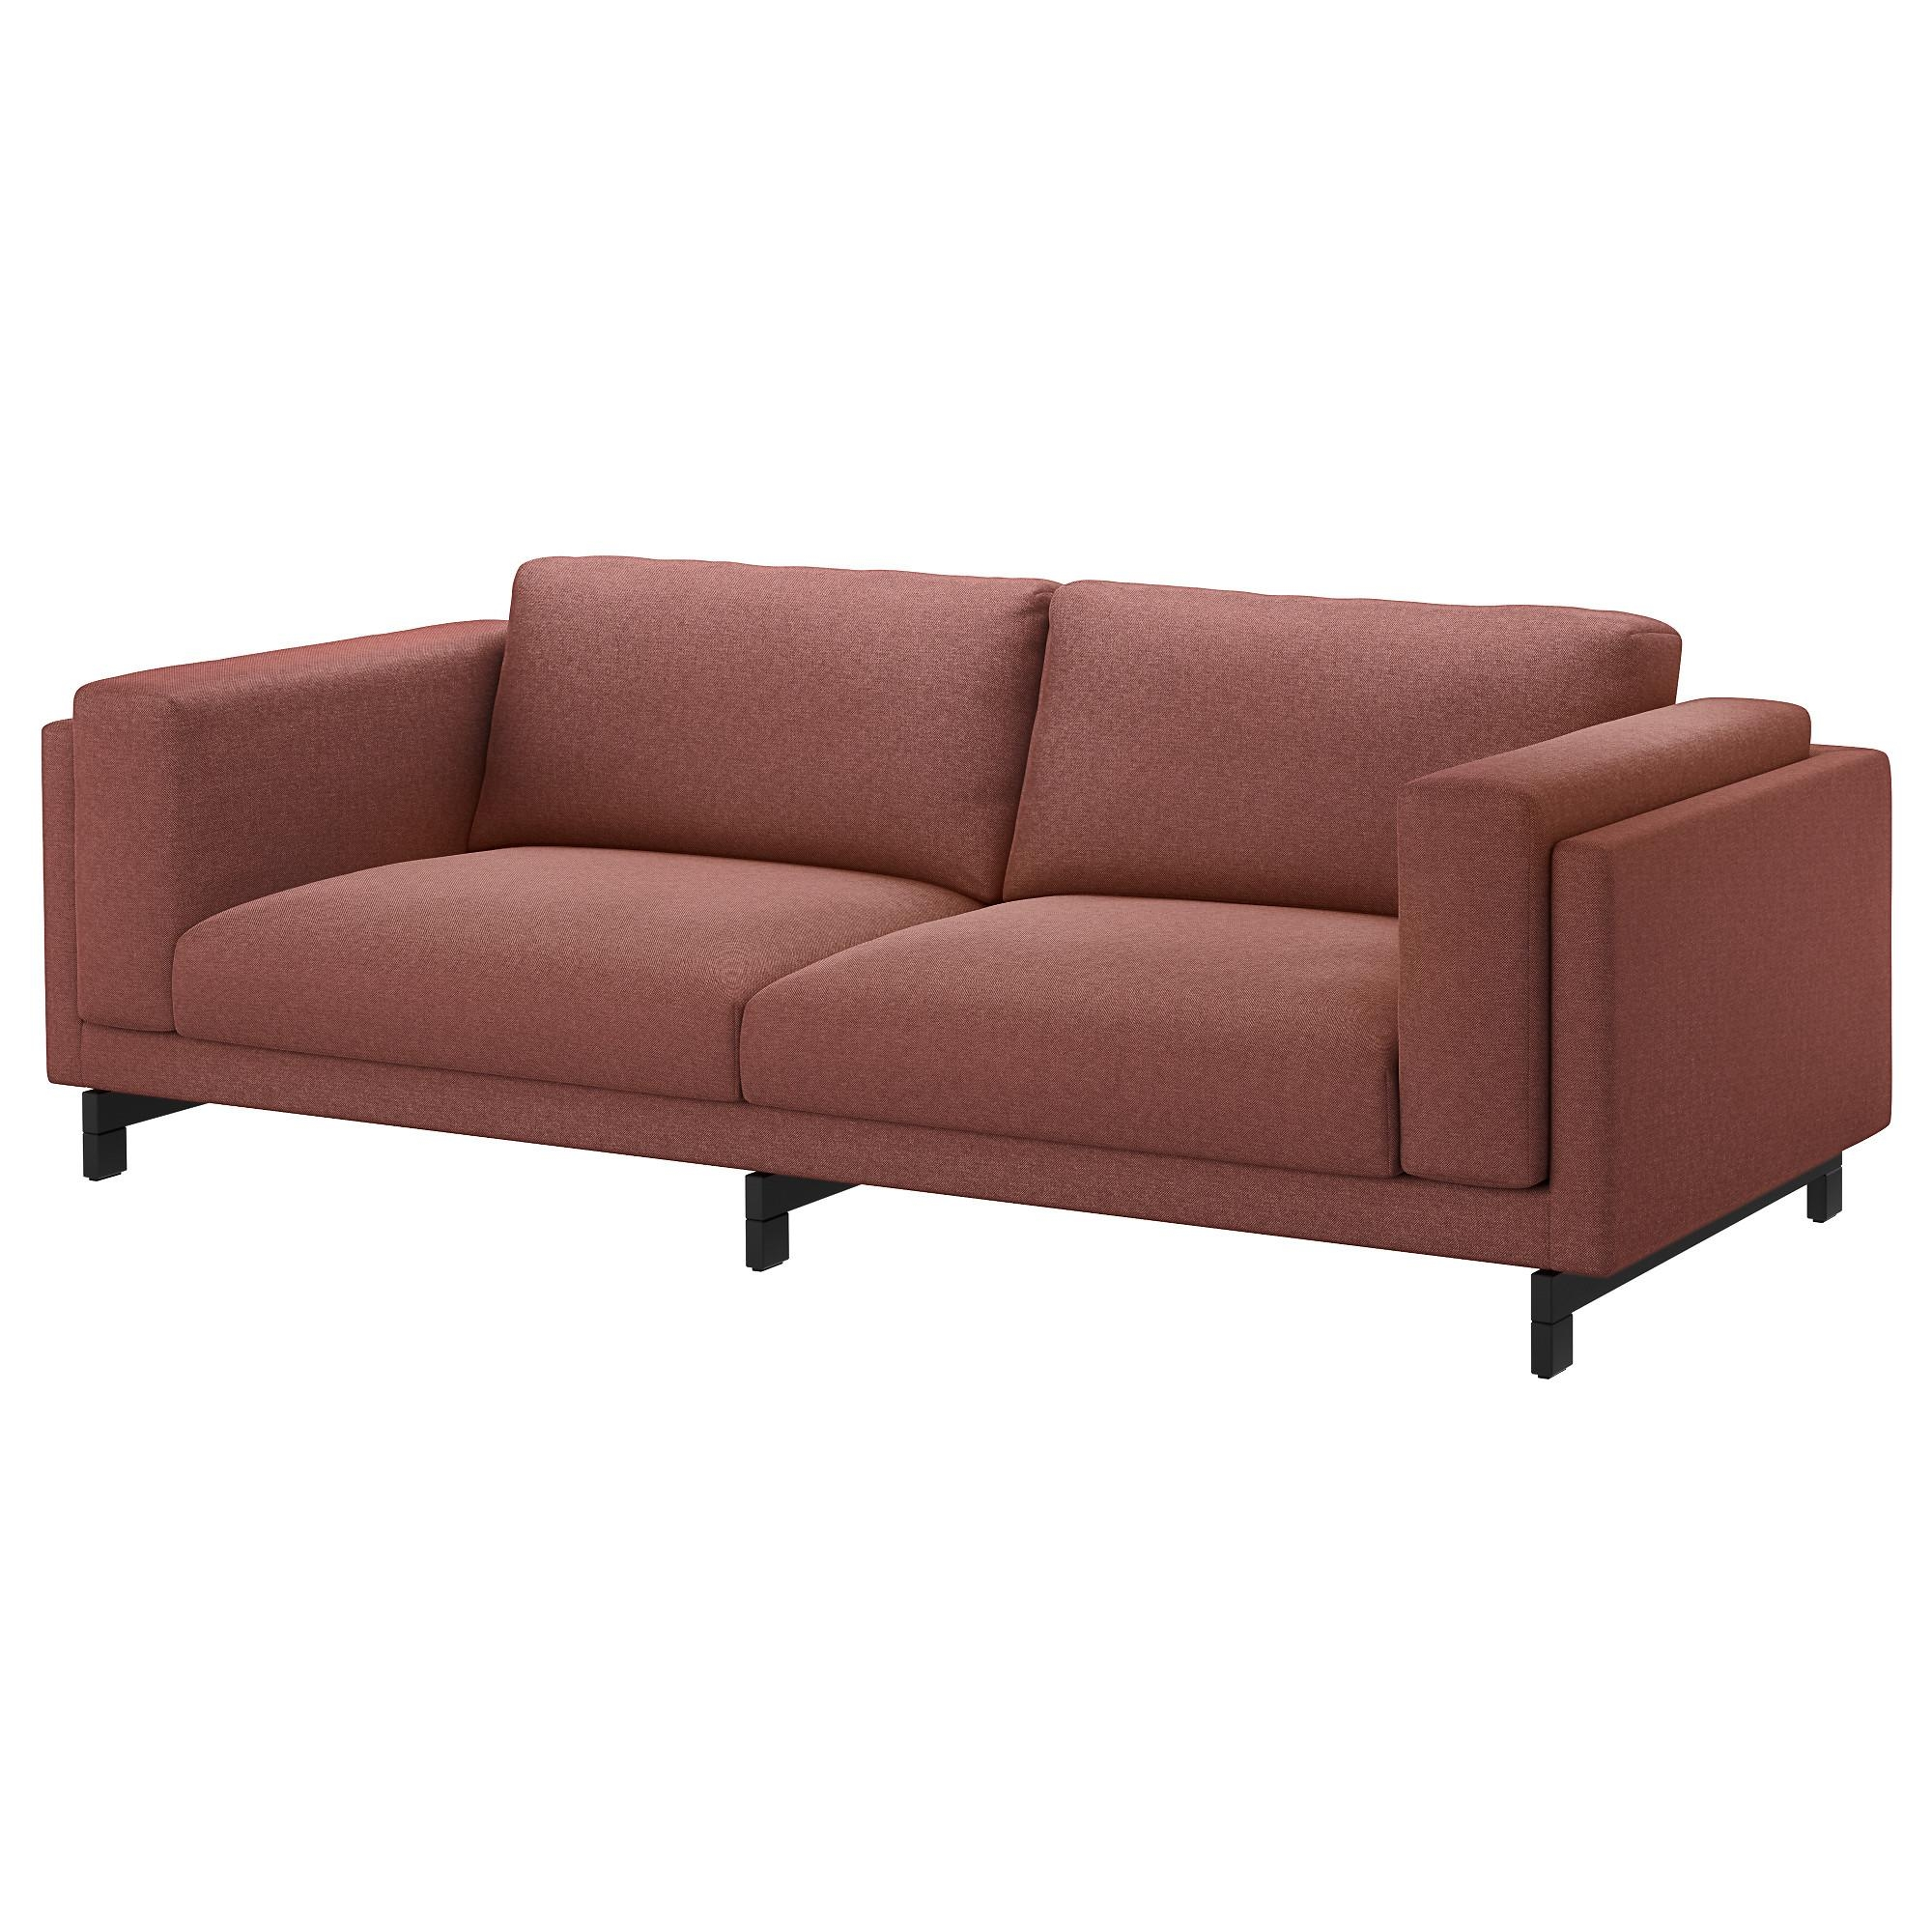 Nockeby Three Seat Sofa Tallmyra Rust/wood – Ikea Within Orange Ikea Sofas (View 8 of 20)